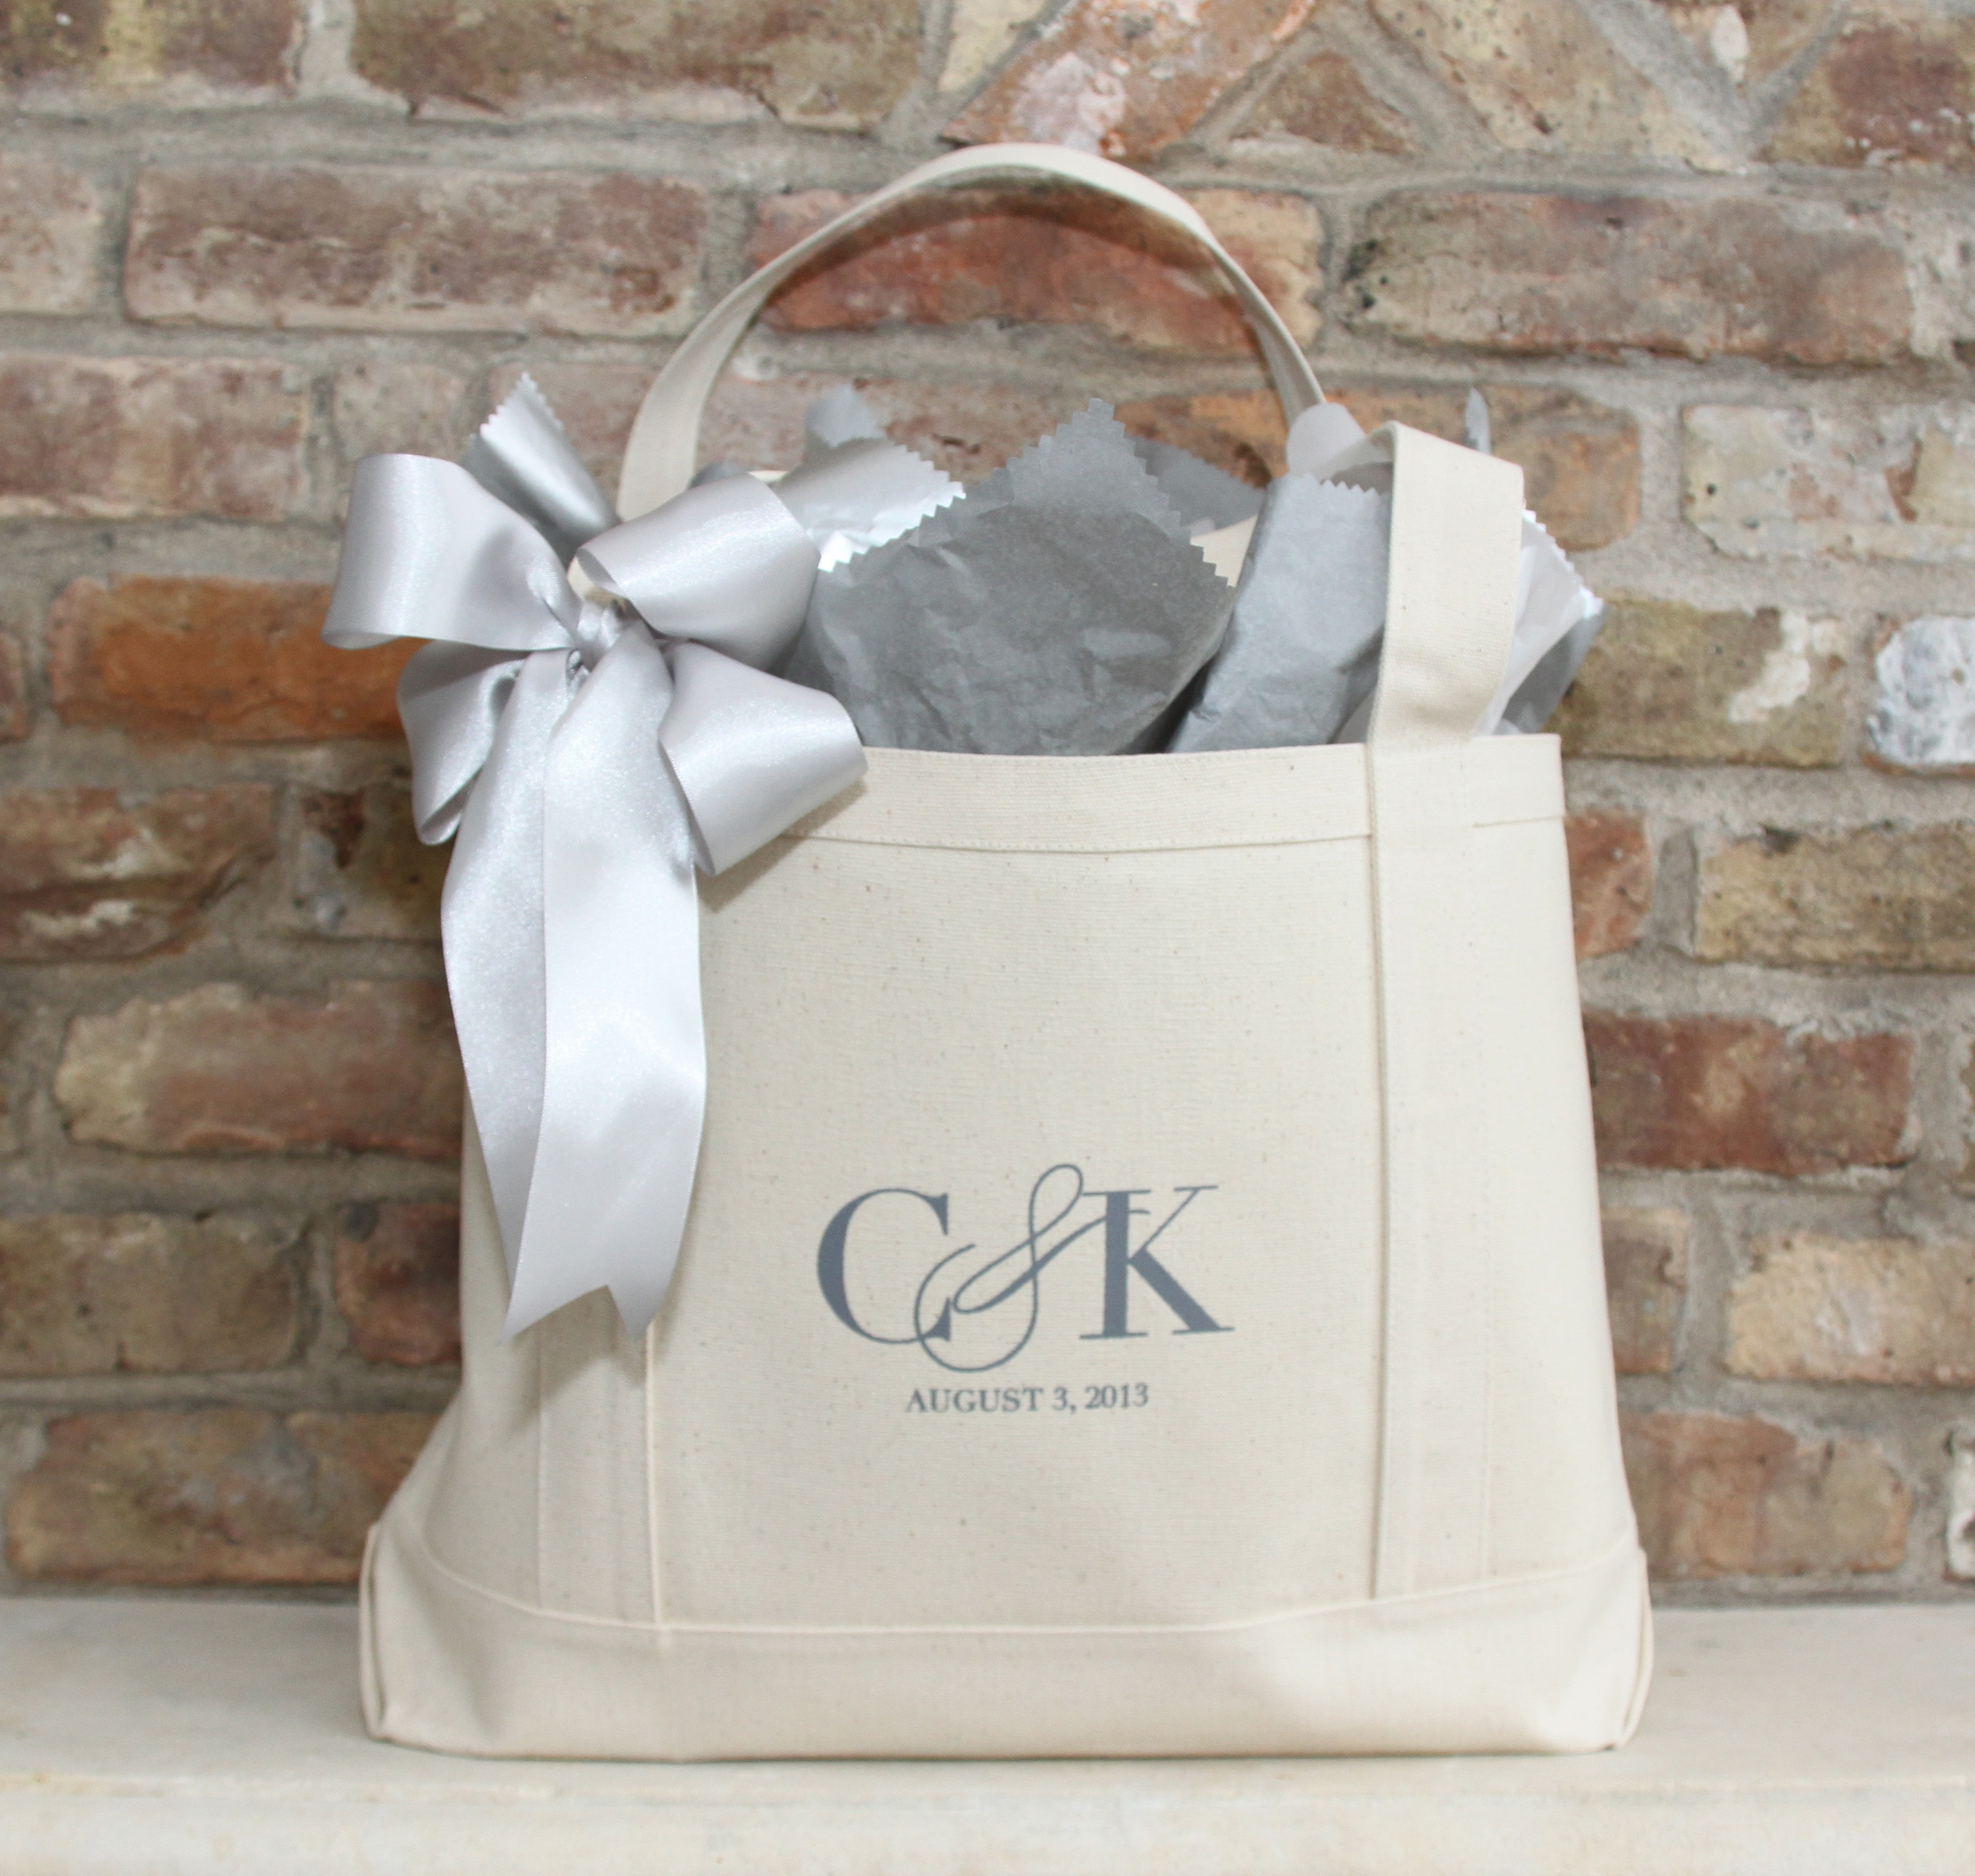 Wedding Gift Bag Etiquette : Bridal Shower Gift Idea // Custom Tote Bags